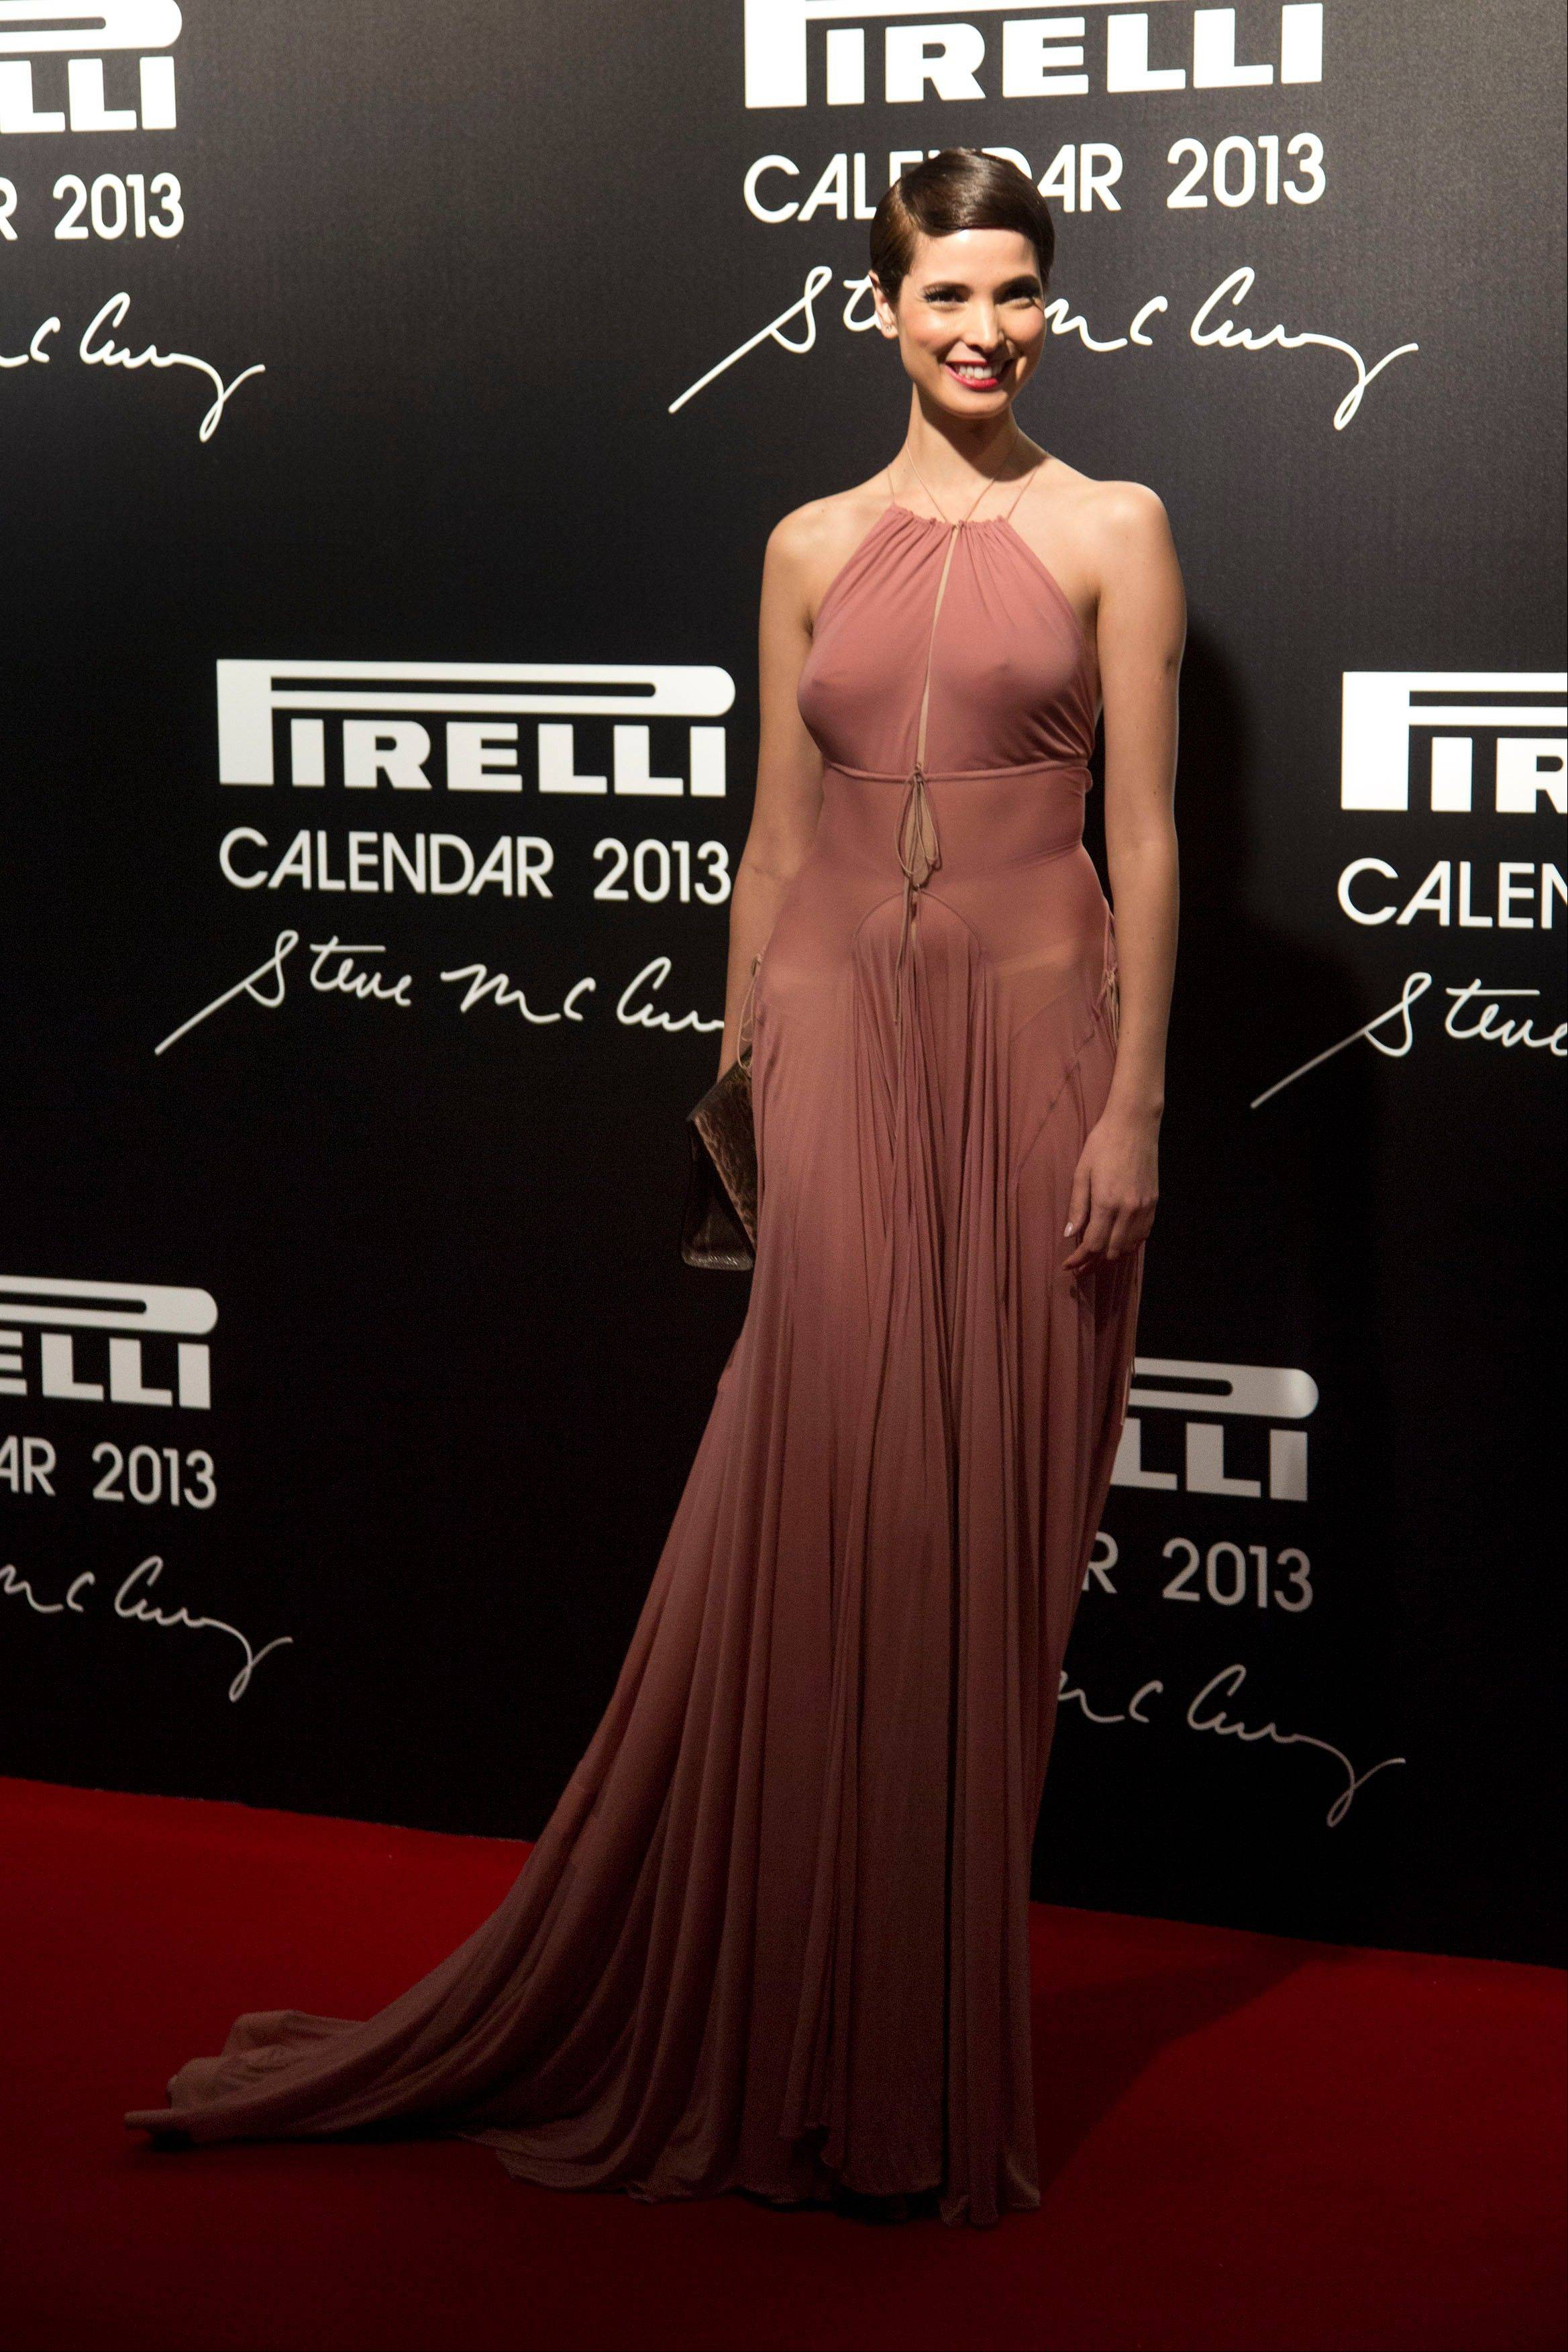 Hanaa Ben Abdesslem poses for photos at the 2013 Pirelli Calendar red carpet event in Rio de Janeiro, Brazil.